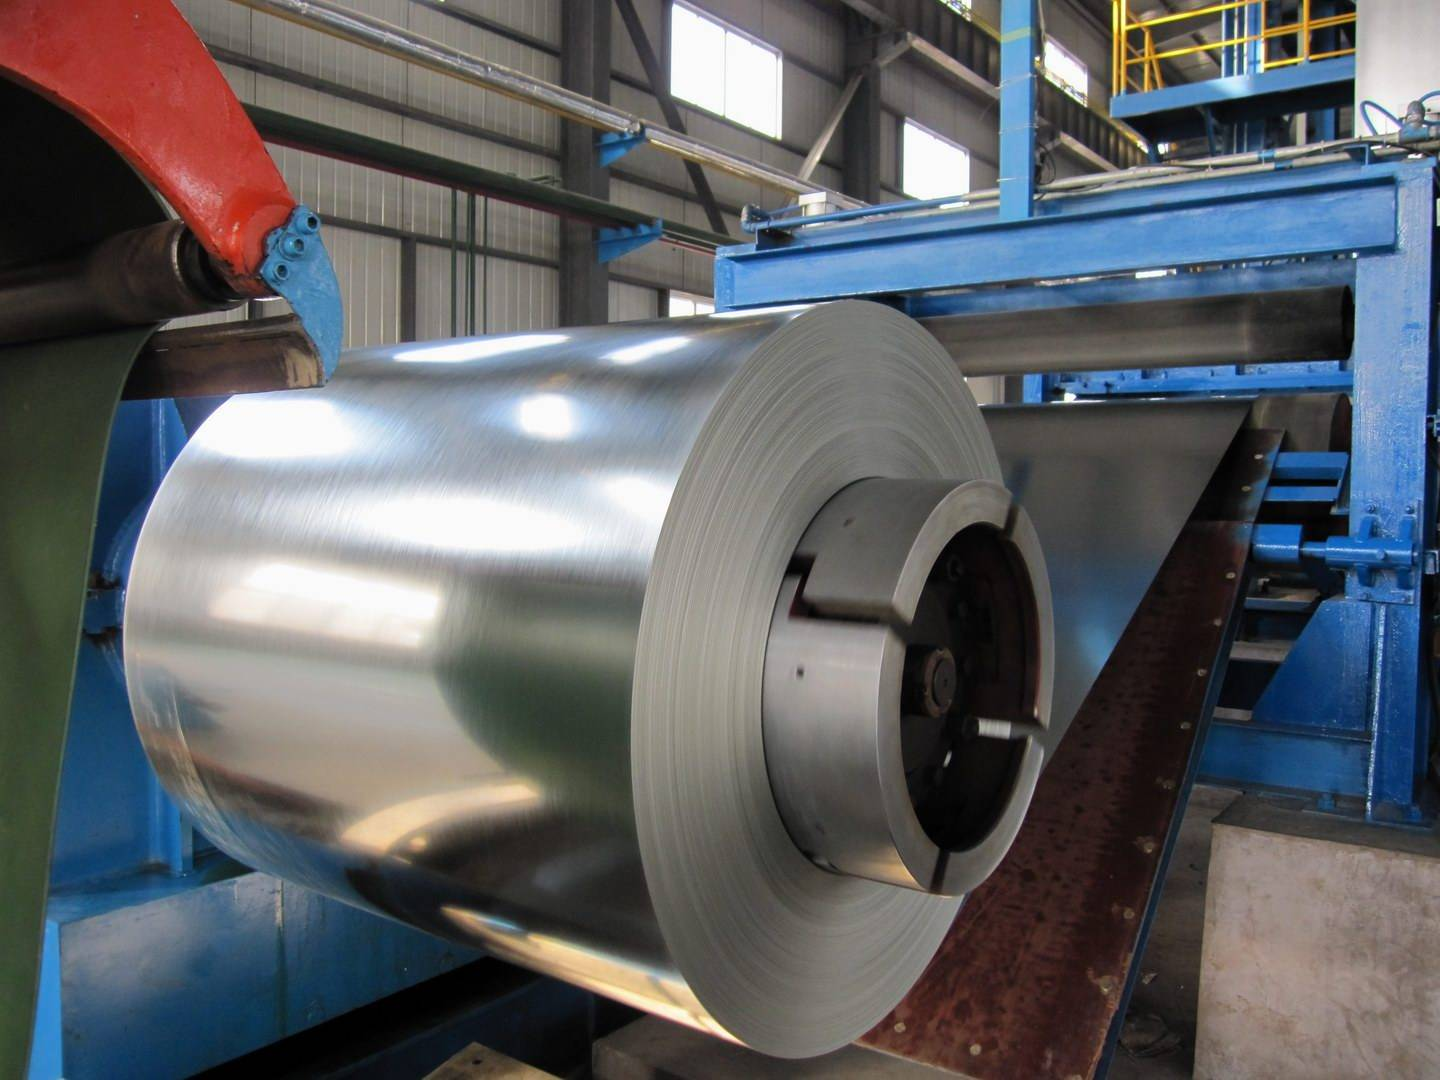 Hot dip galvanized steel coil for sale